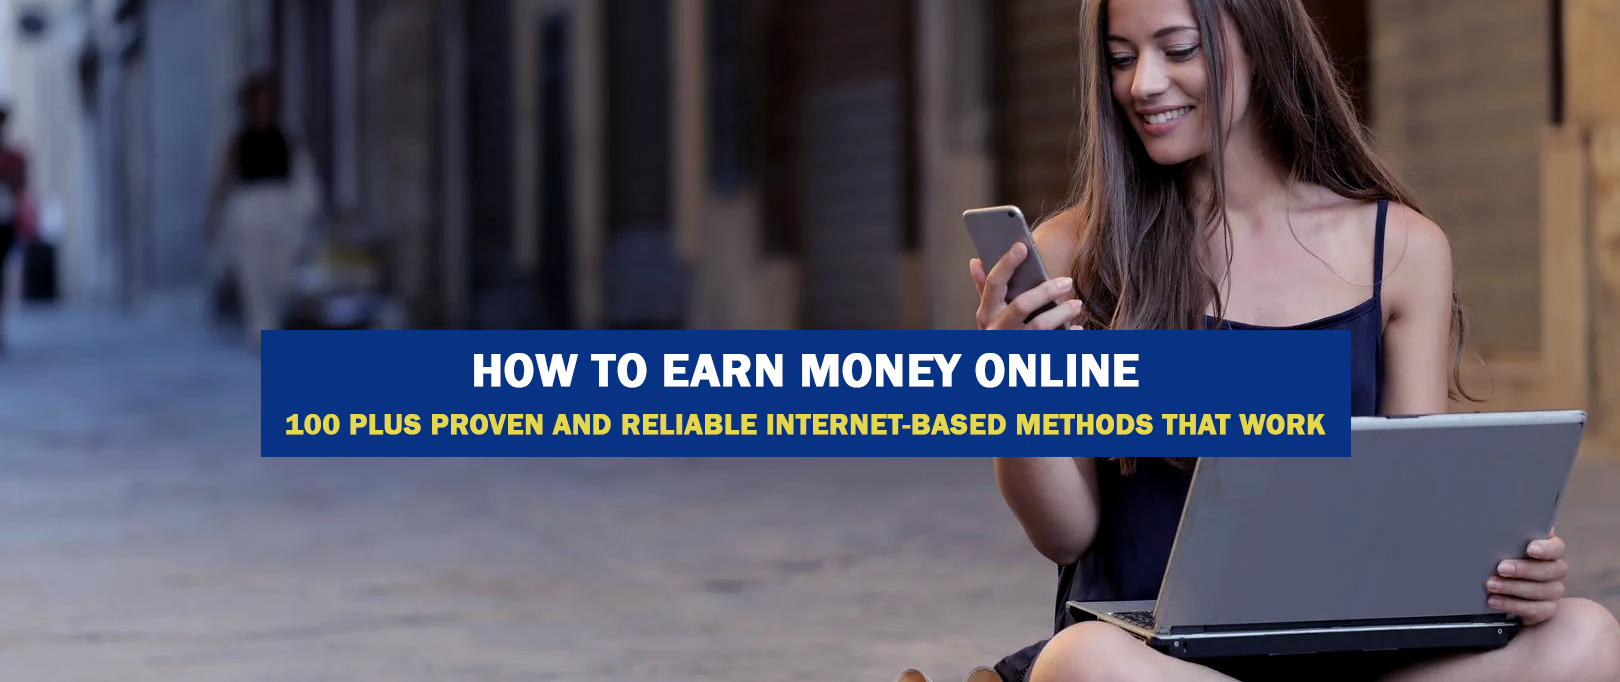 How to earn money online in Sri Lanka 100 plus proven and reliable internet-based methods that work